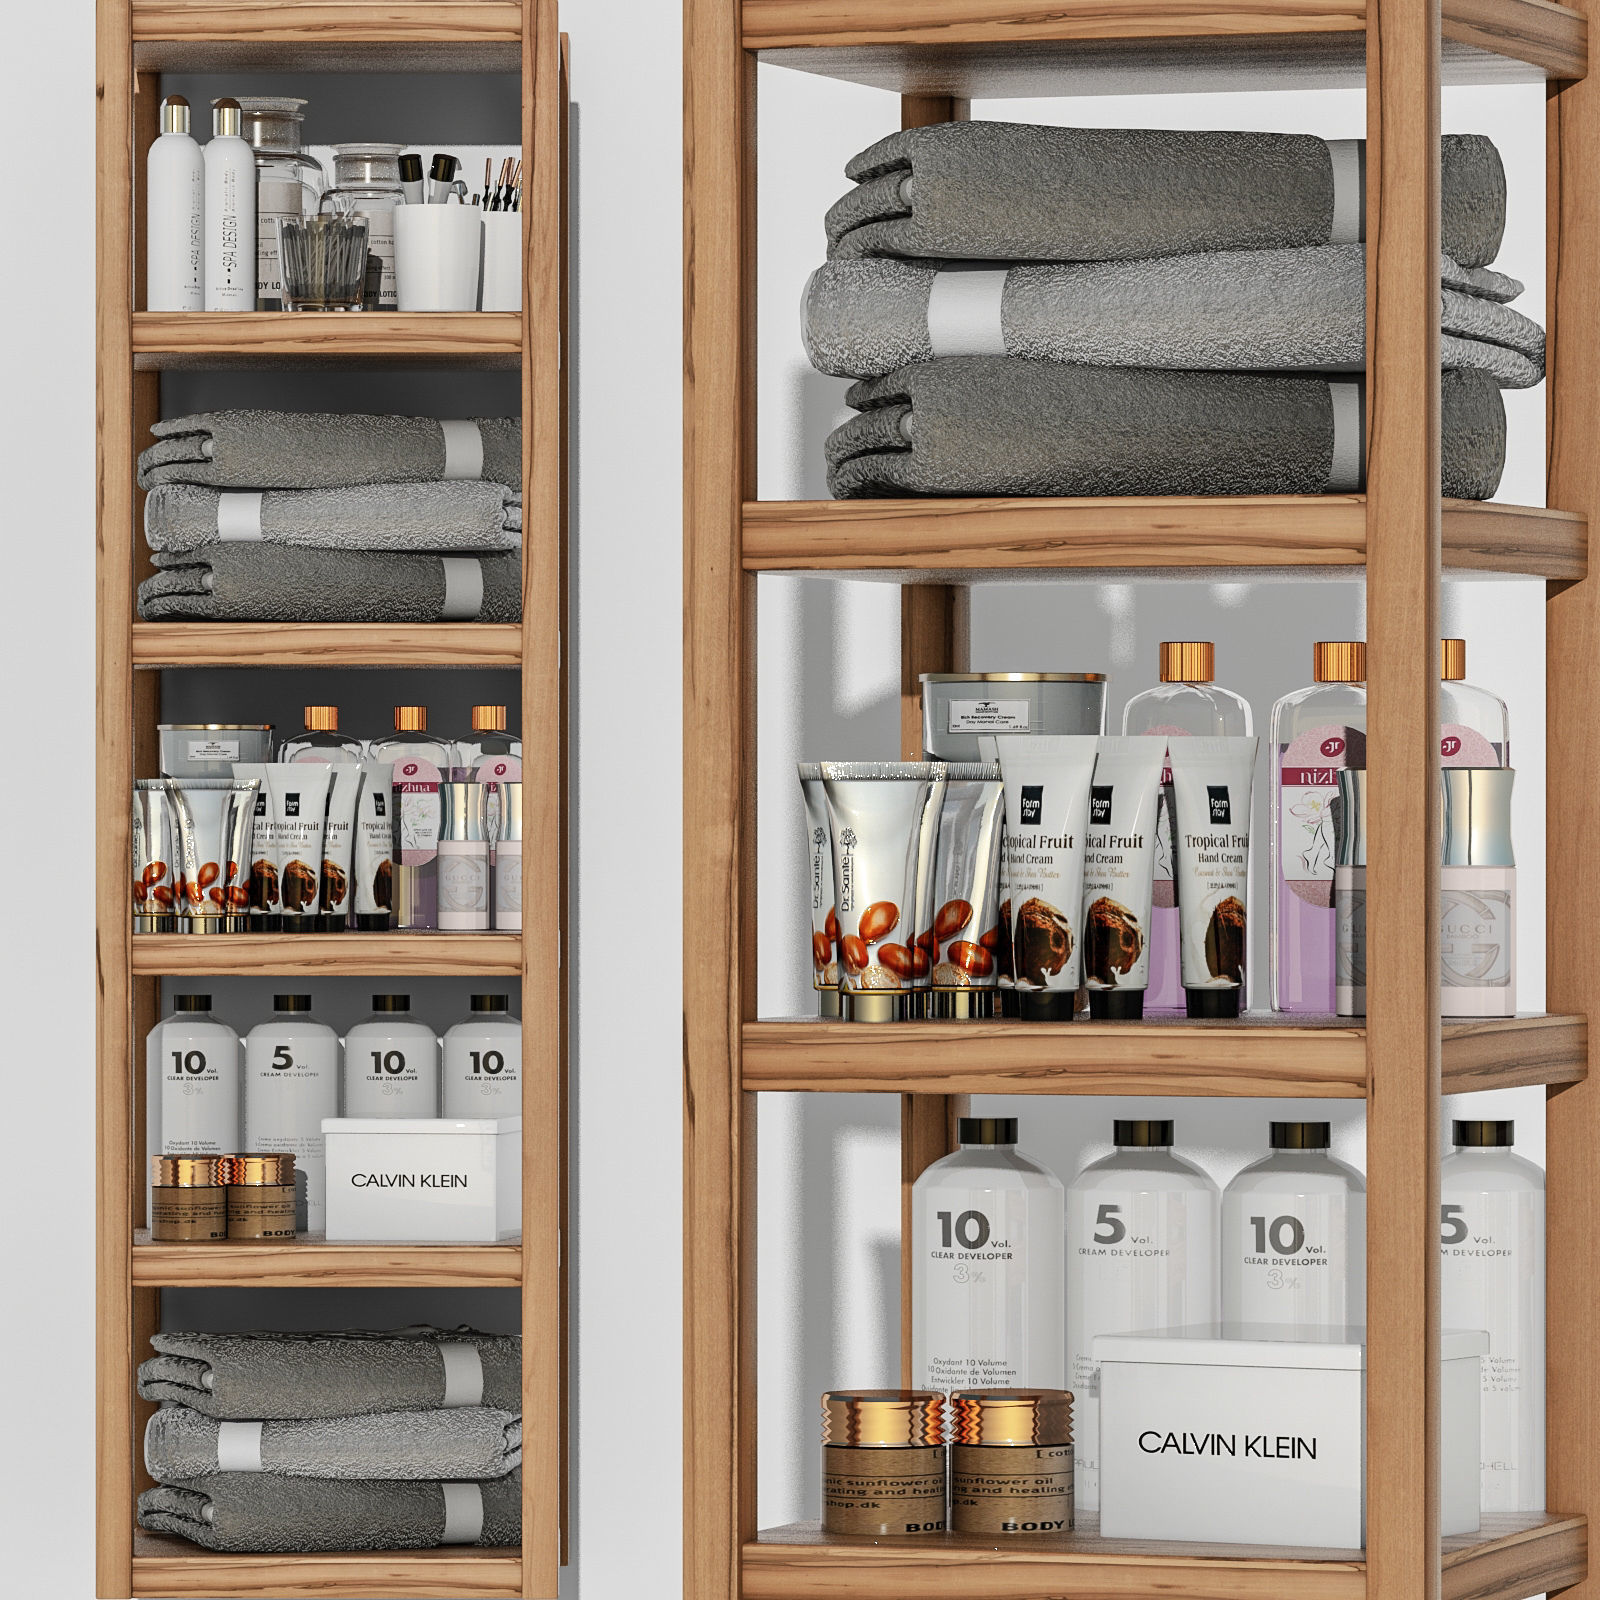 Shelving in a bathroom with cosmetics